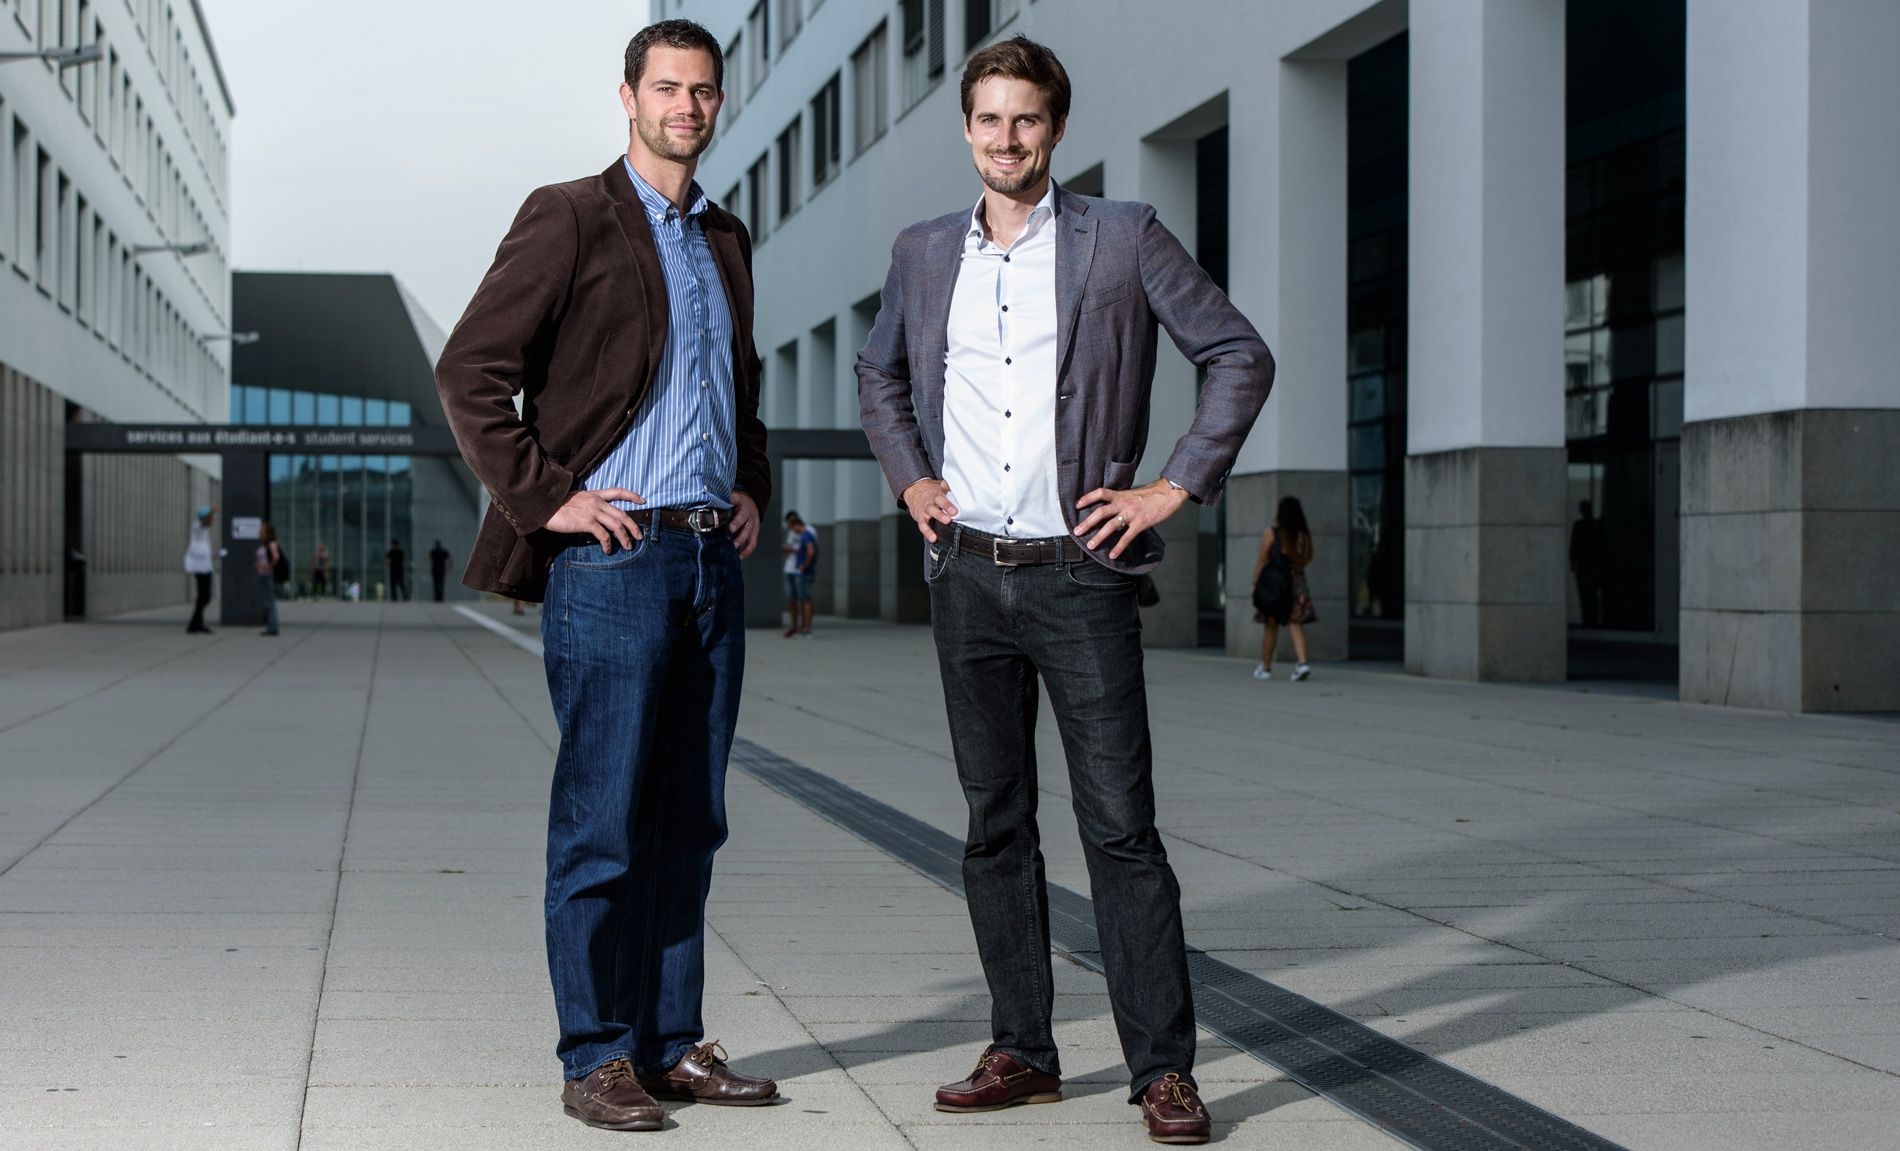 SalesWings founders